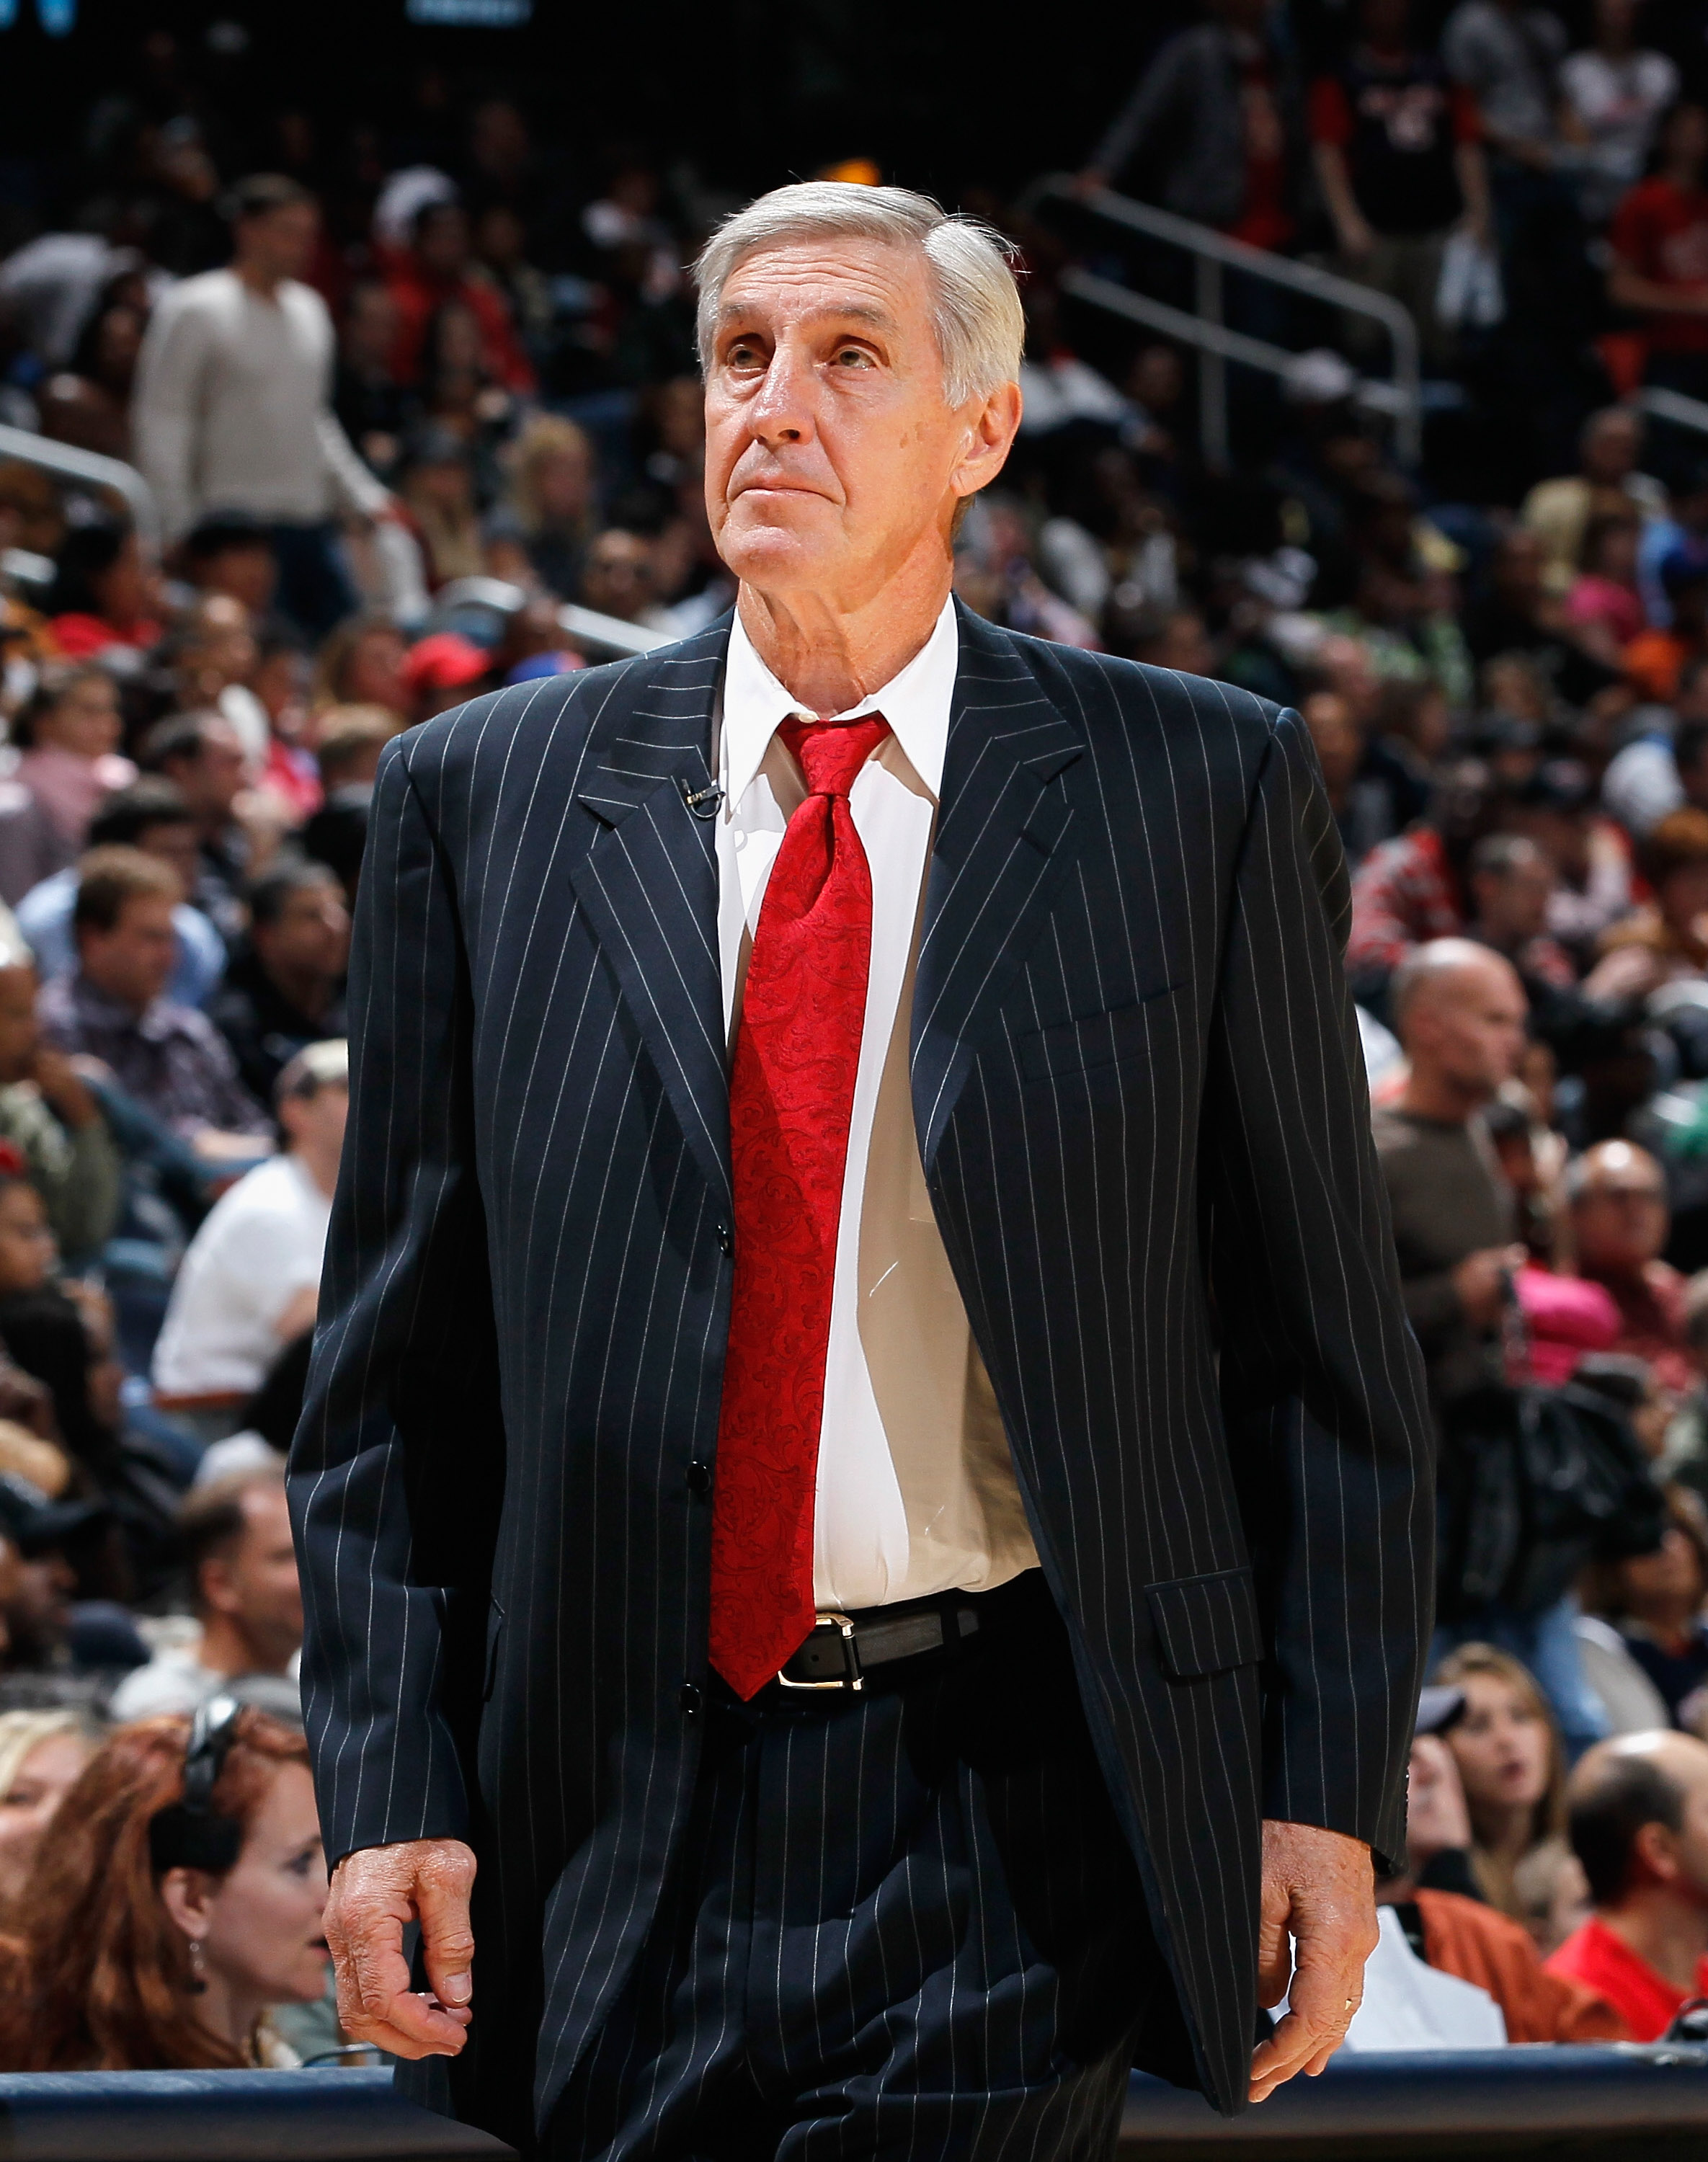 ATLANTA - NOVEMBER 12:  Head coach Jerry Sloan of the Utah Jazz against the Atlanta Hawks at Philips Arena on November 12, 2010 in Atlanta, Georgia.  NOTE TO USER: User expressly acknowledges and agrees that, by downloading and/or using this Photograph, U